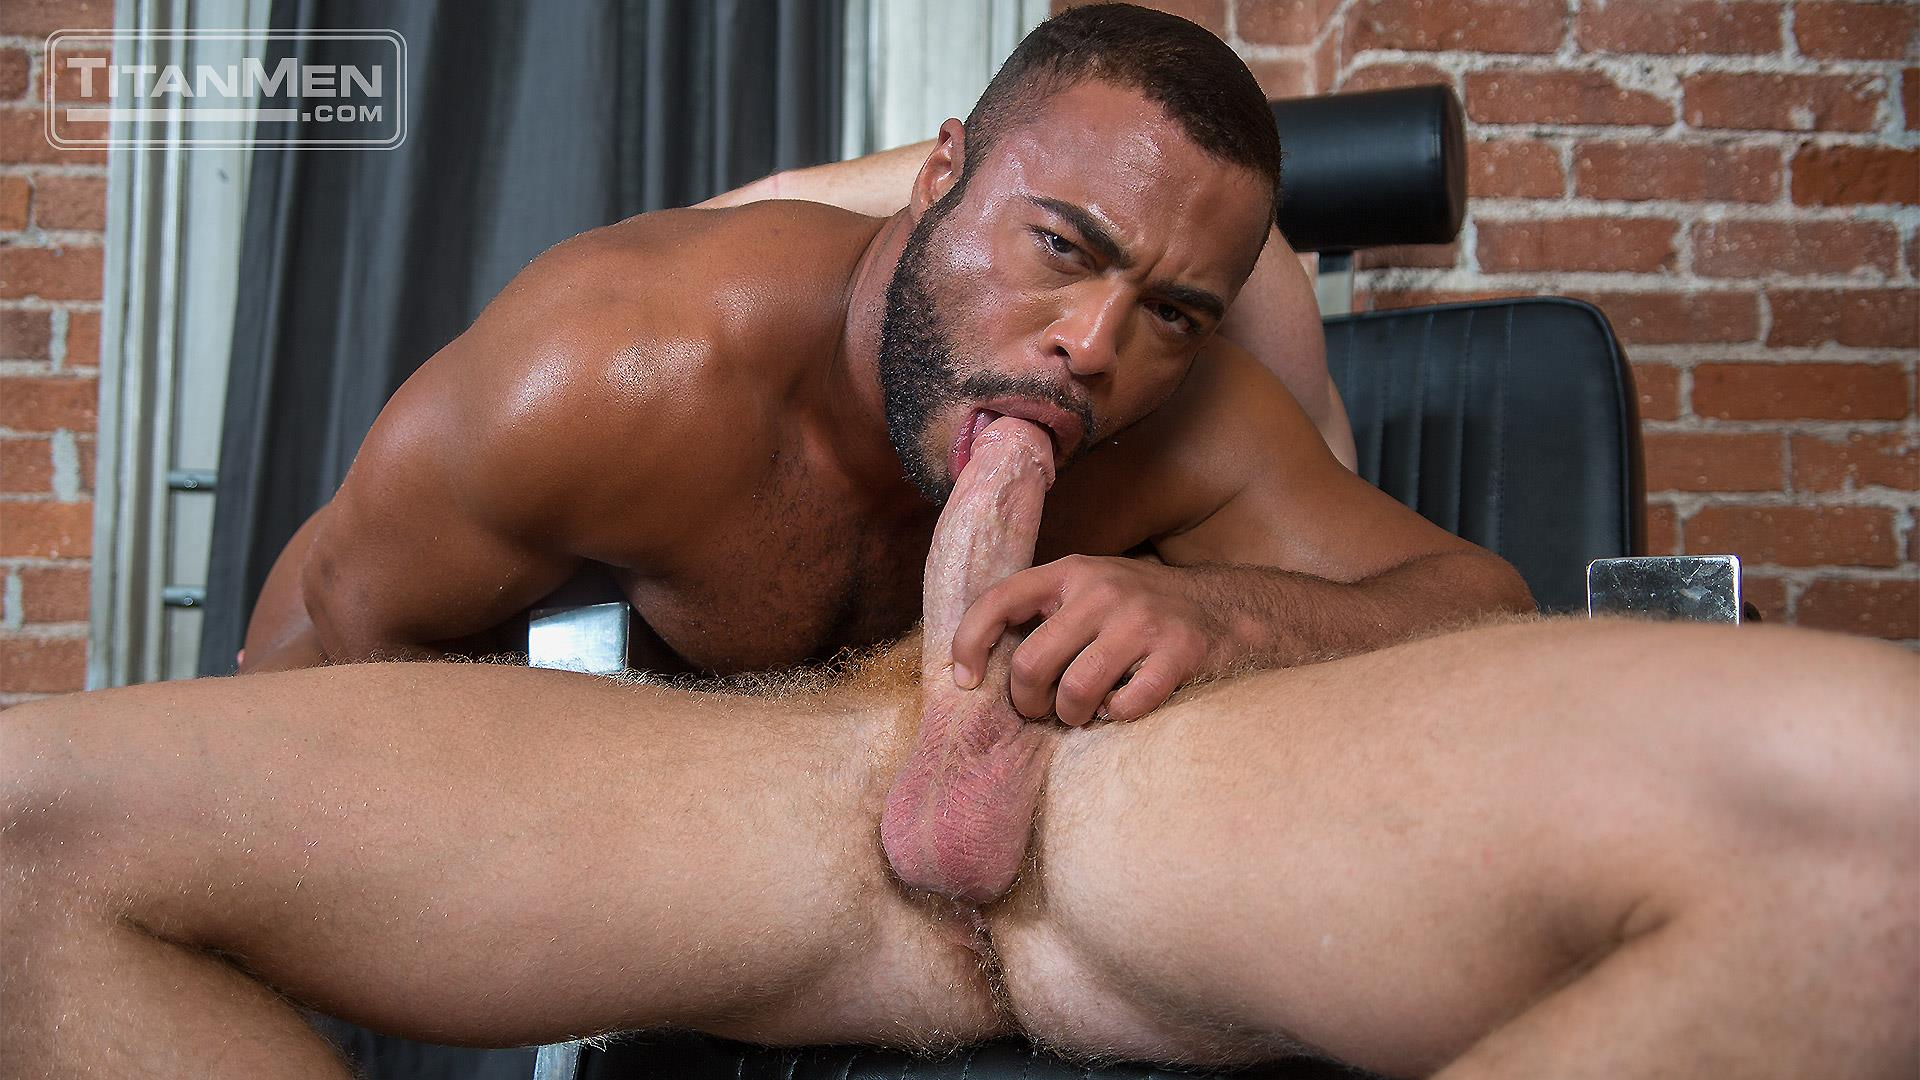 TitanMen Micah Brandt and Bennett Anthony Interracial Muscle Hunks Flip Fucking Amateur Gay Porn 06 Micah Brandt and Bennett Anthony Flip Fucking With Their Big Dicks